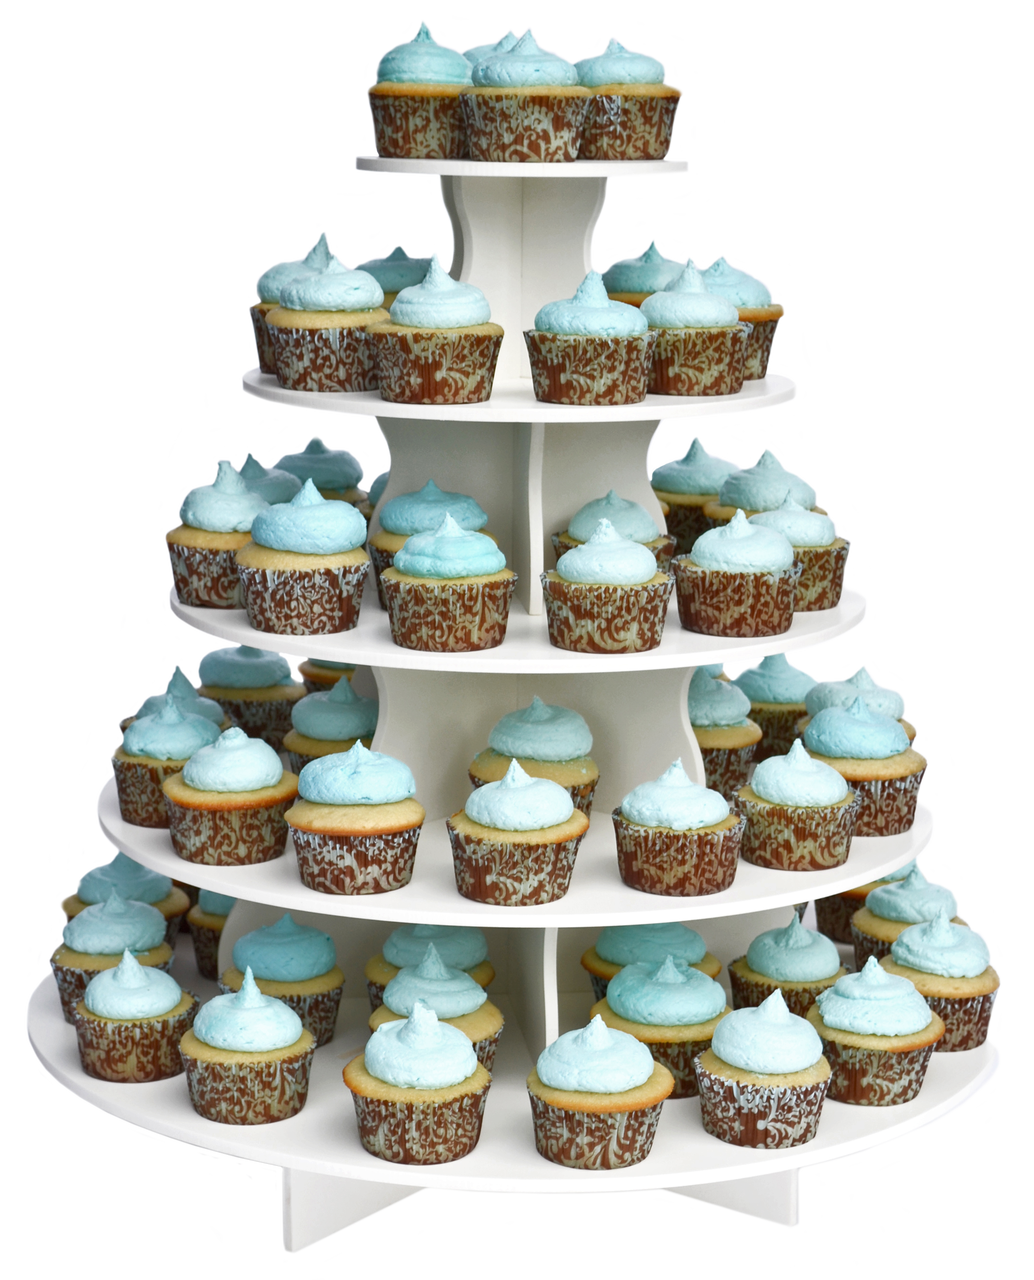 5 Tier White Plastic Cupcake Tower Rental Includes 50